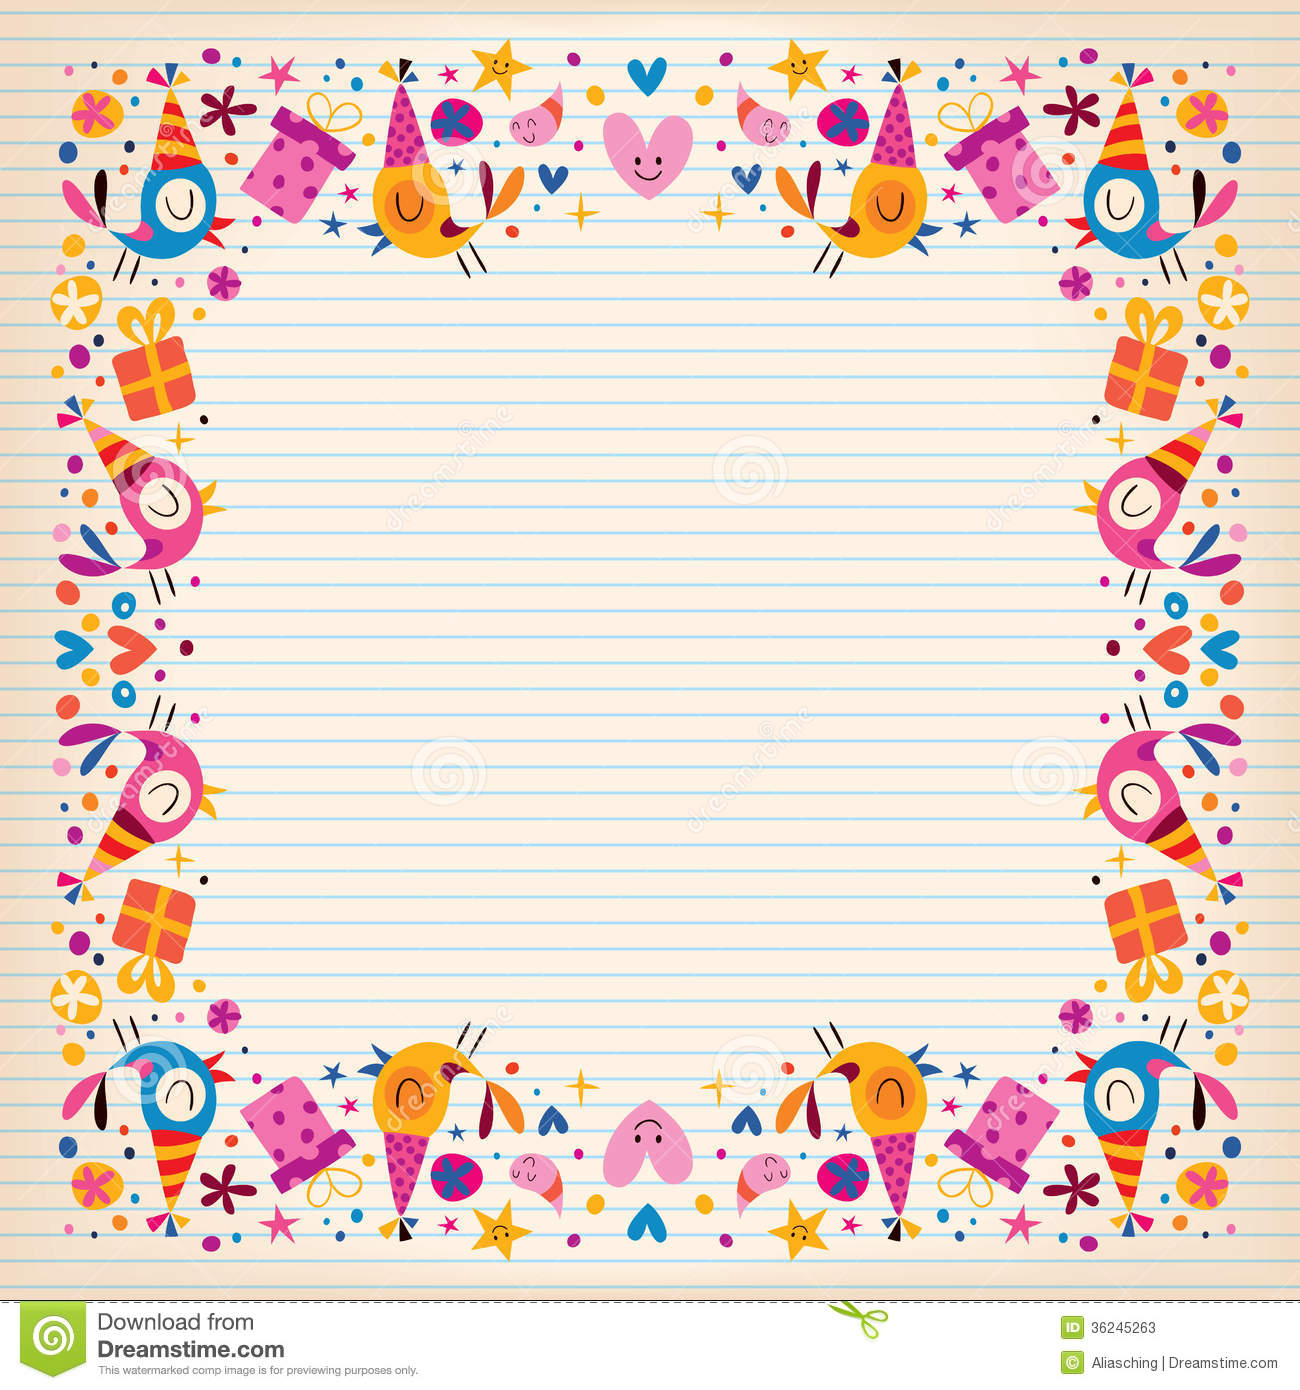 happy birthday border lined paper card with space for text